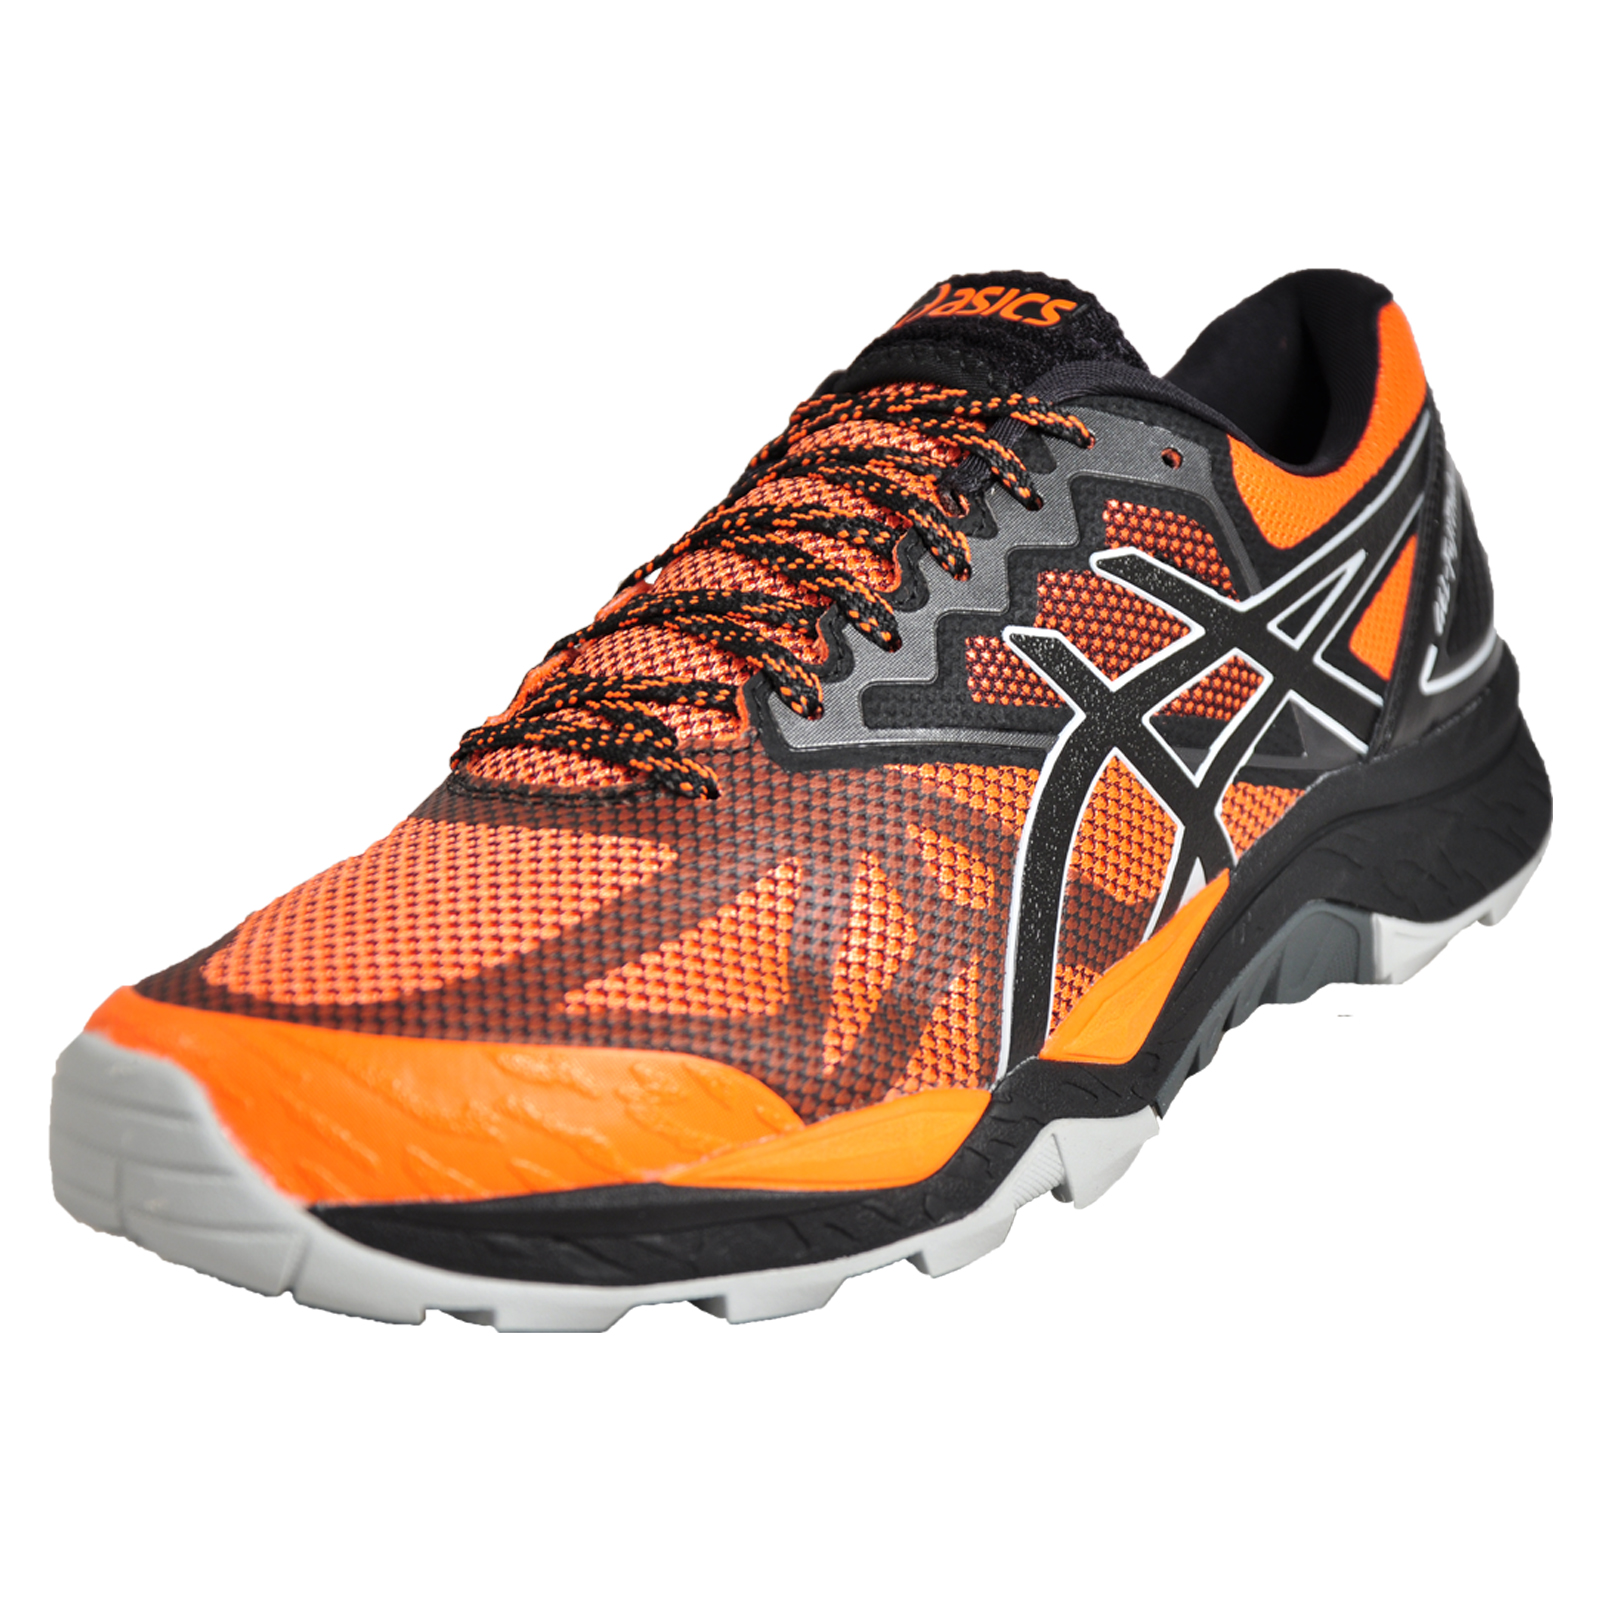 innovative design b7a3e 41bb6 Details about Asics Gel FujiTrabuco 6 Mens All Terrain High Performance  Trail Running Shoes Gr